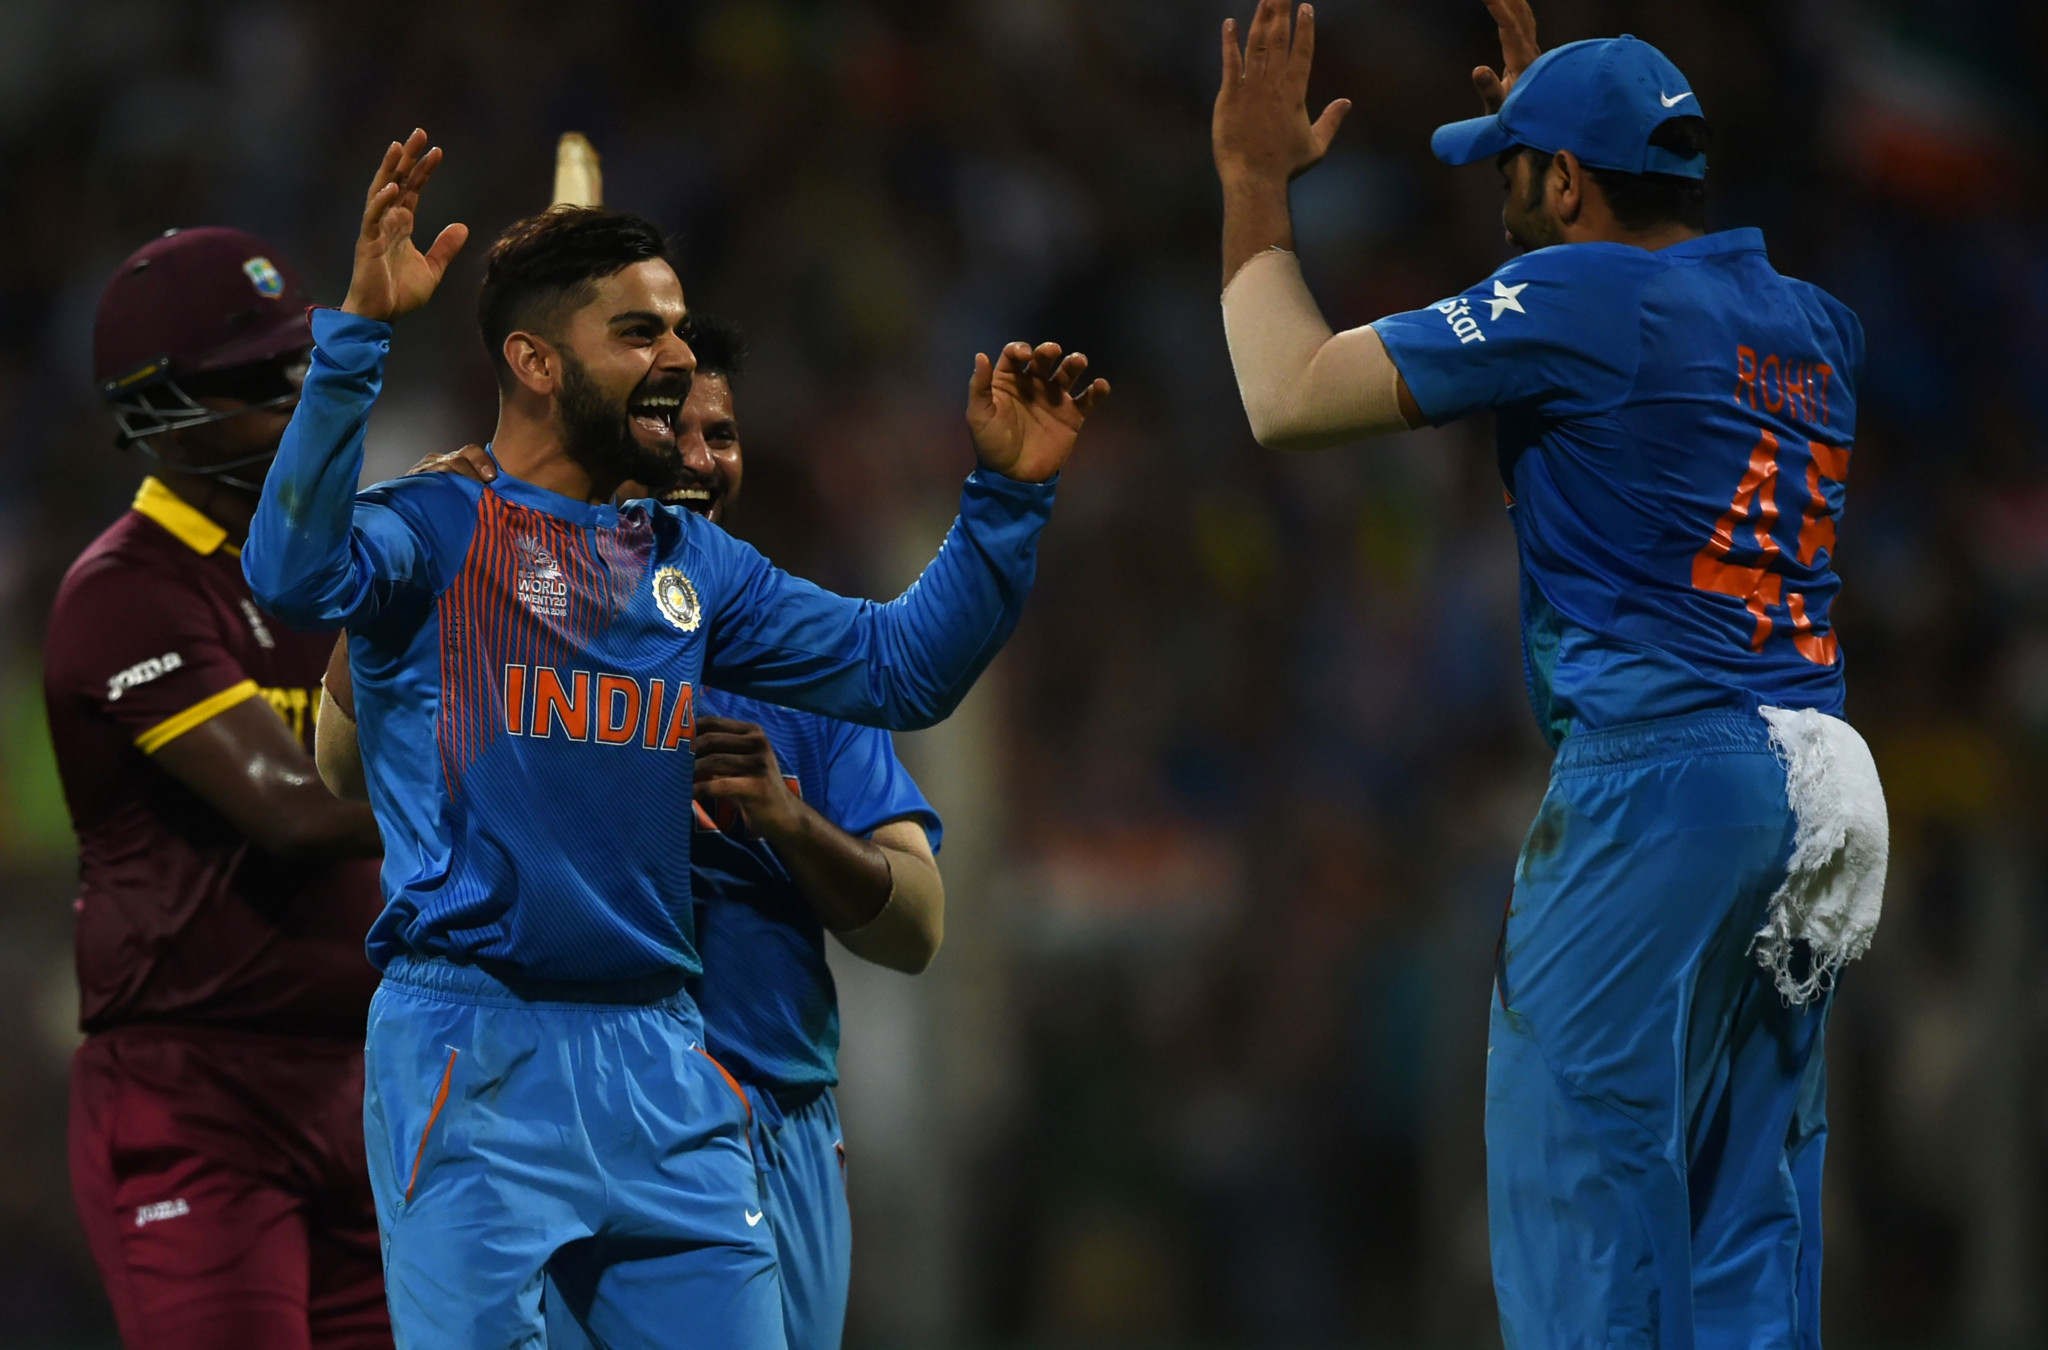 India's cricket team is self-isolating ahead of the competition in just over a week ©Getty Images